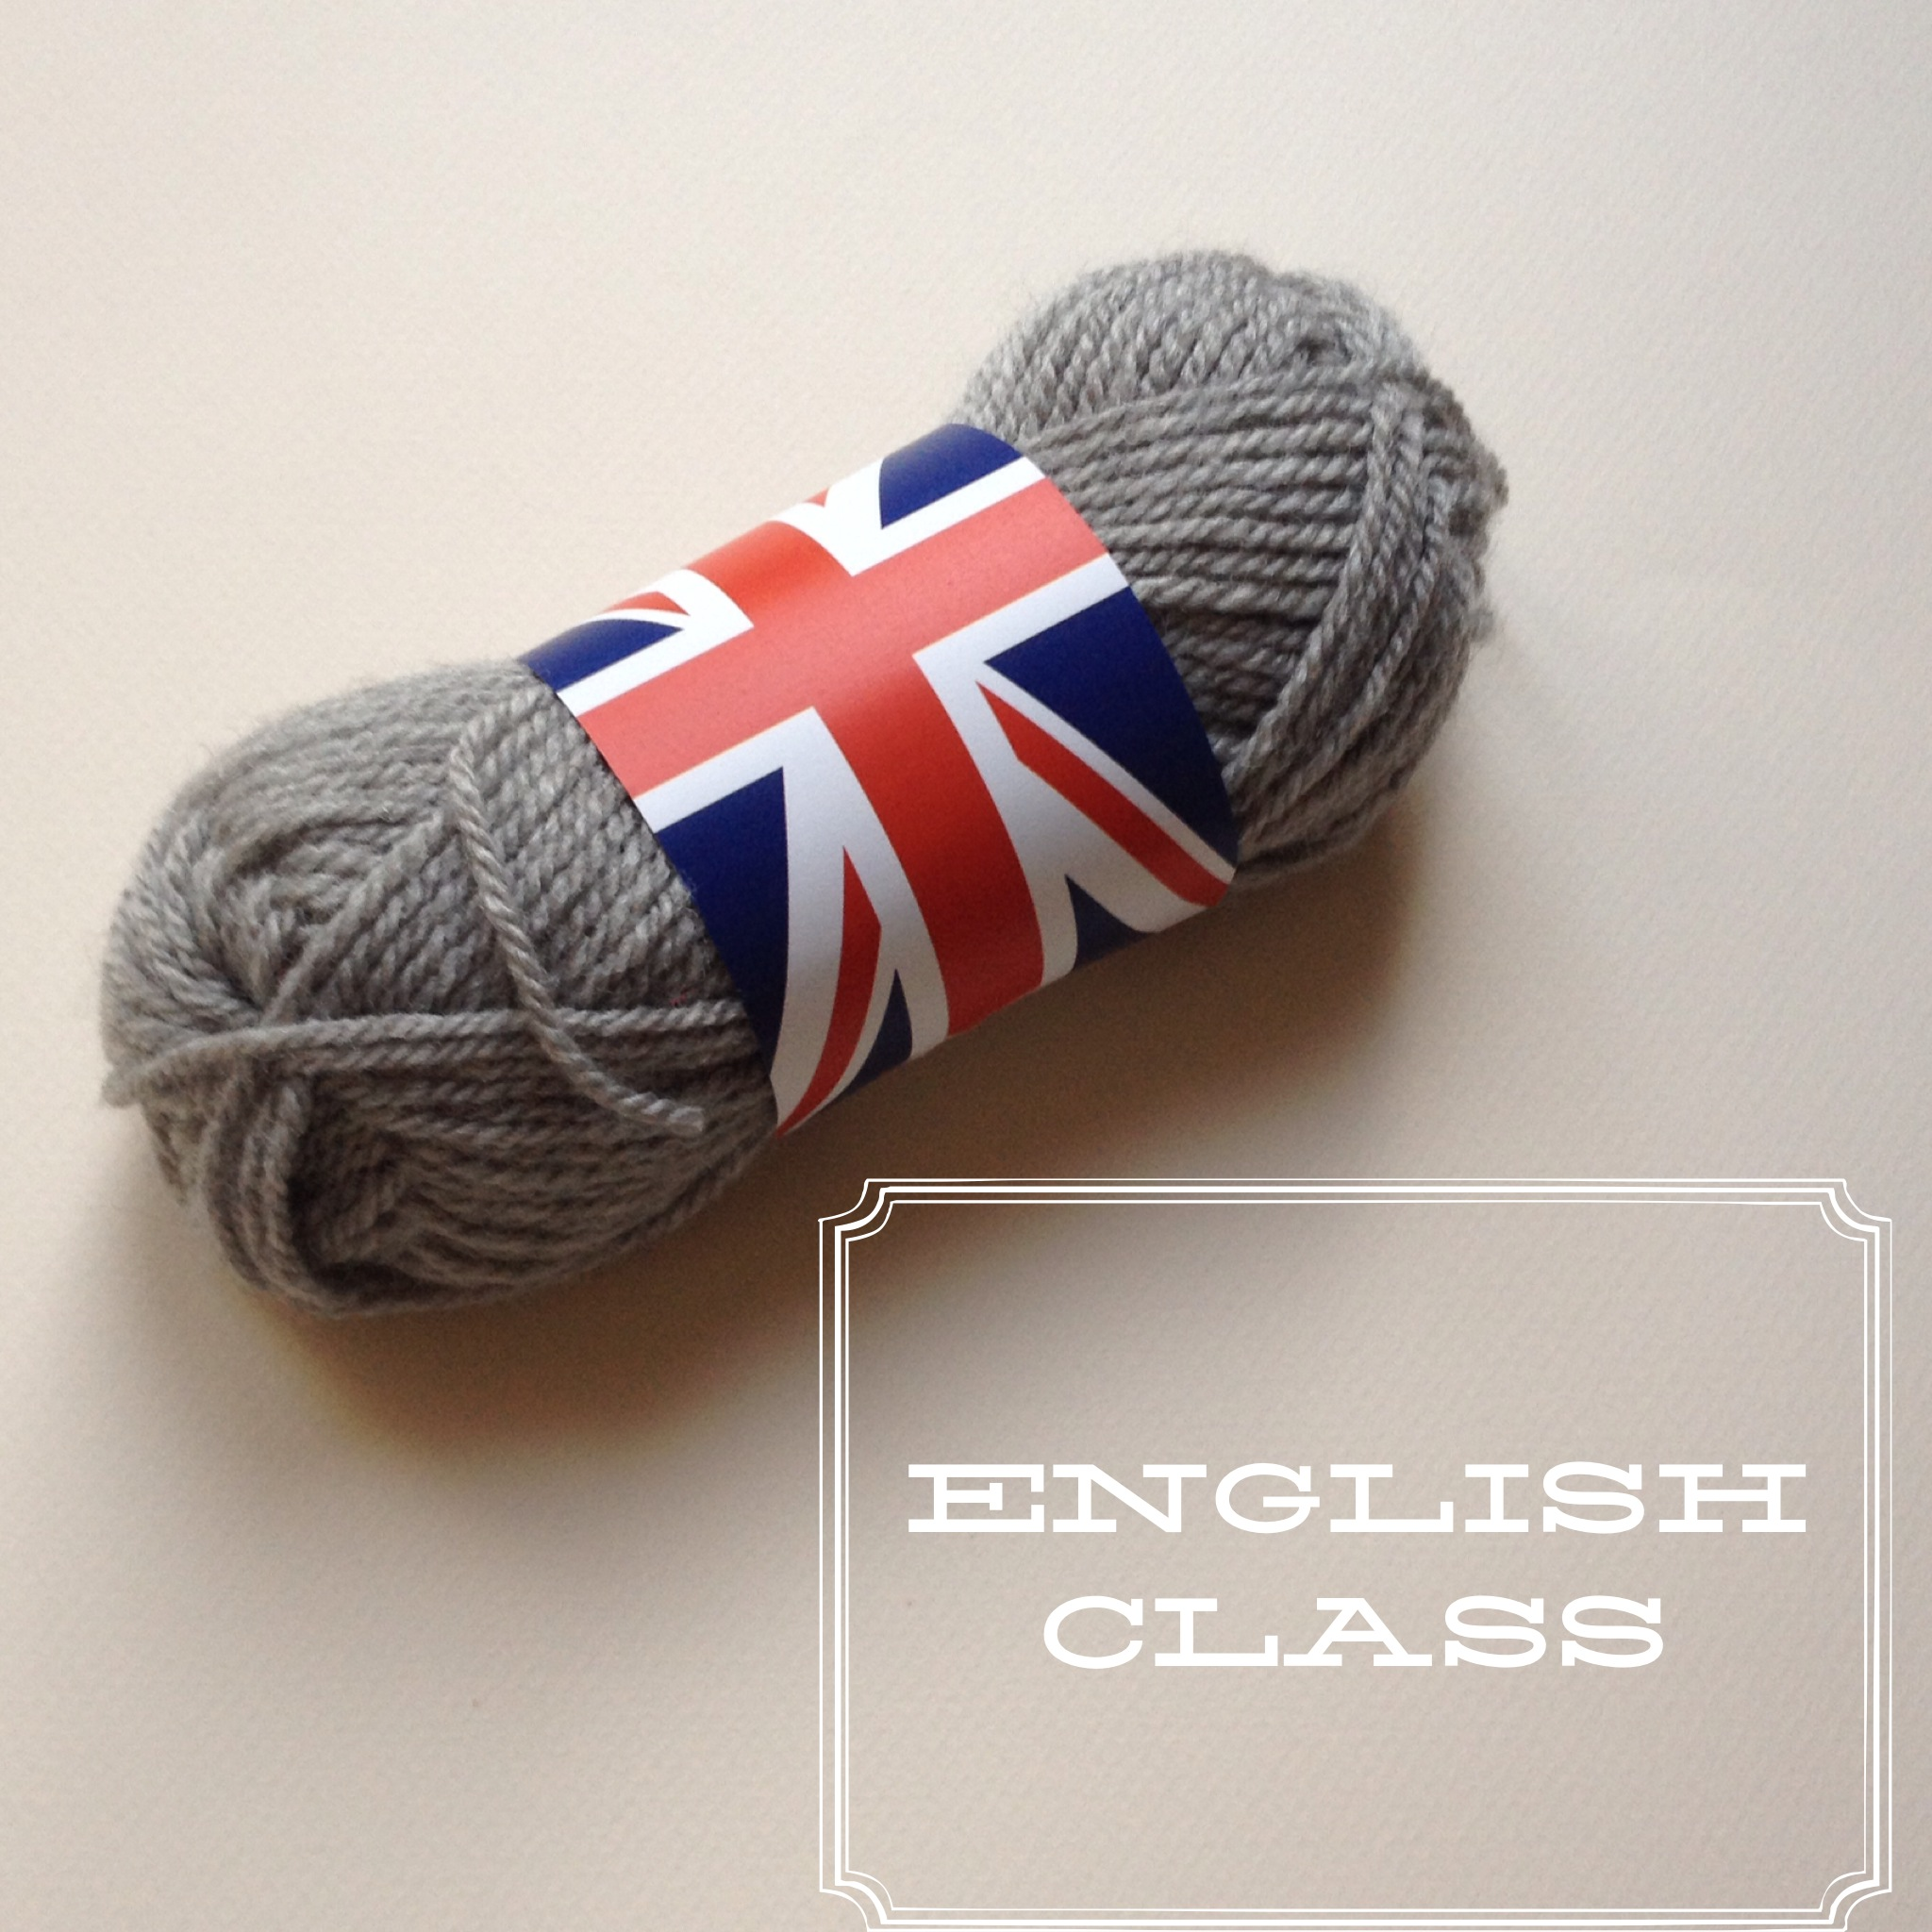 Do you knit english?